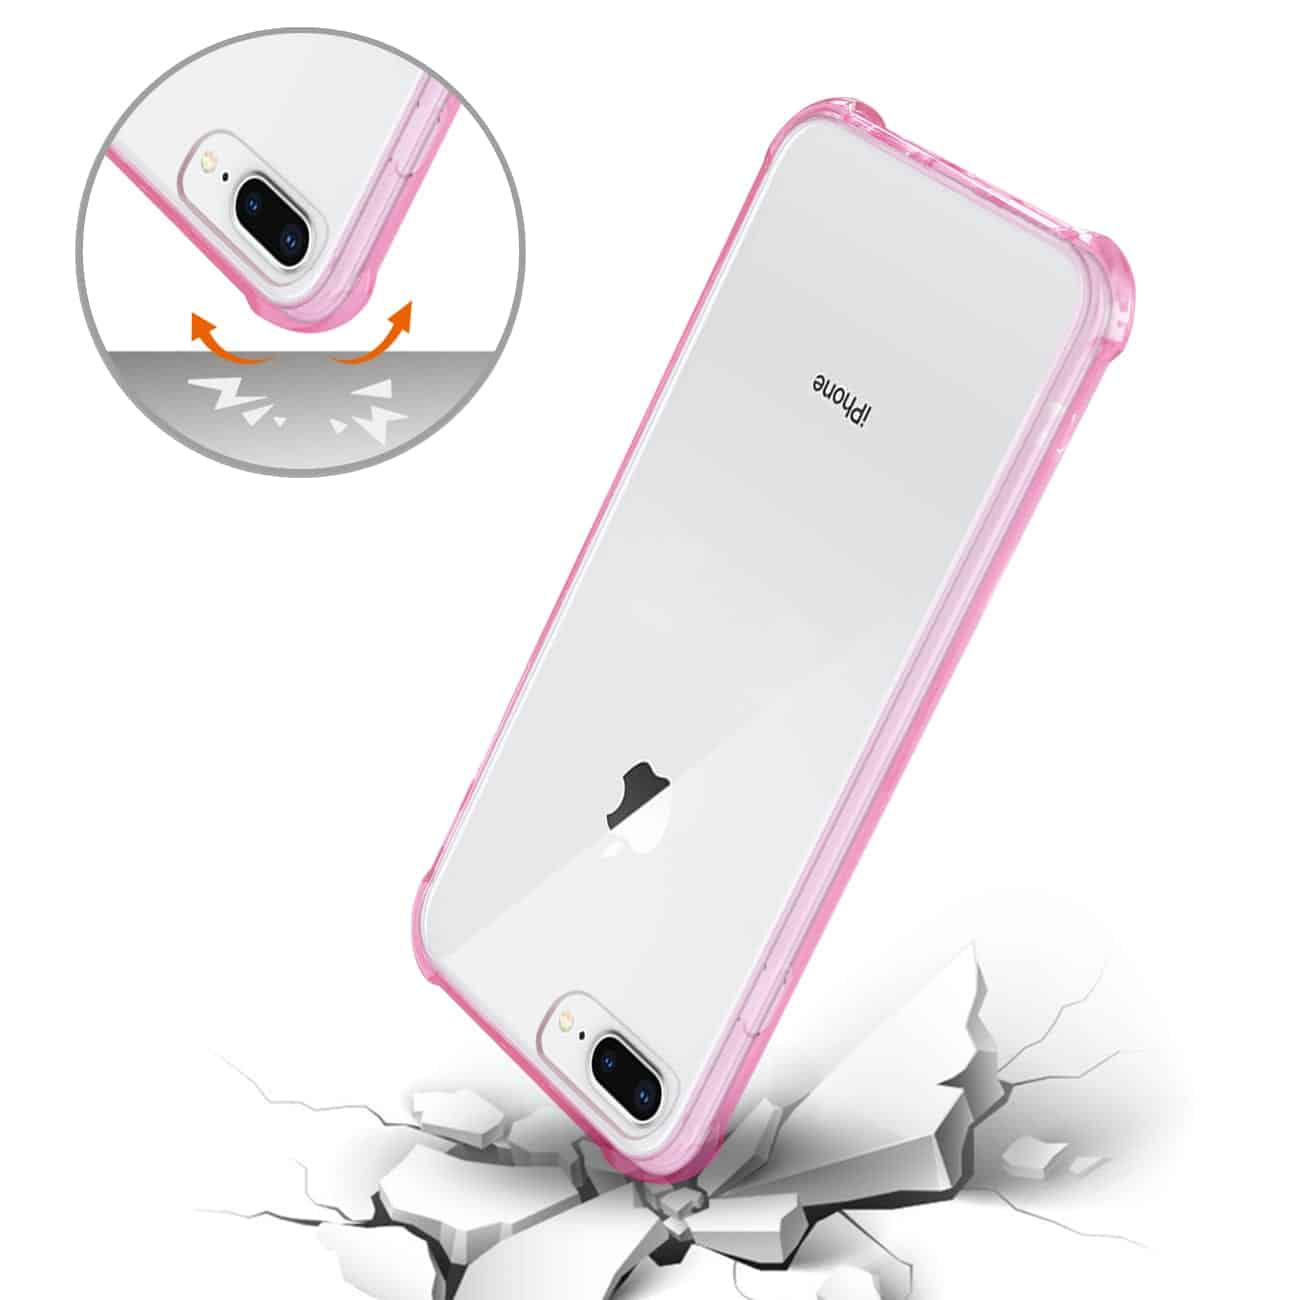 iPhone 8 Plus Clear Bumper Case With Air Cushion Protection In Clear Hot Pink